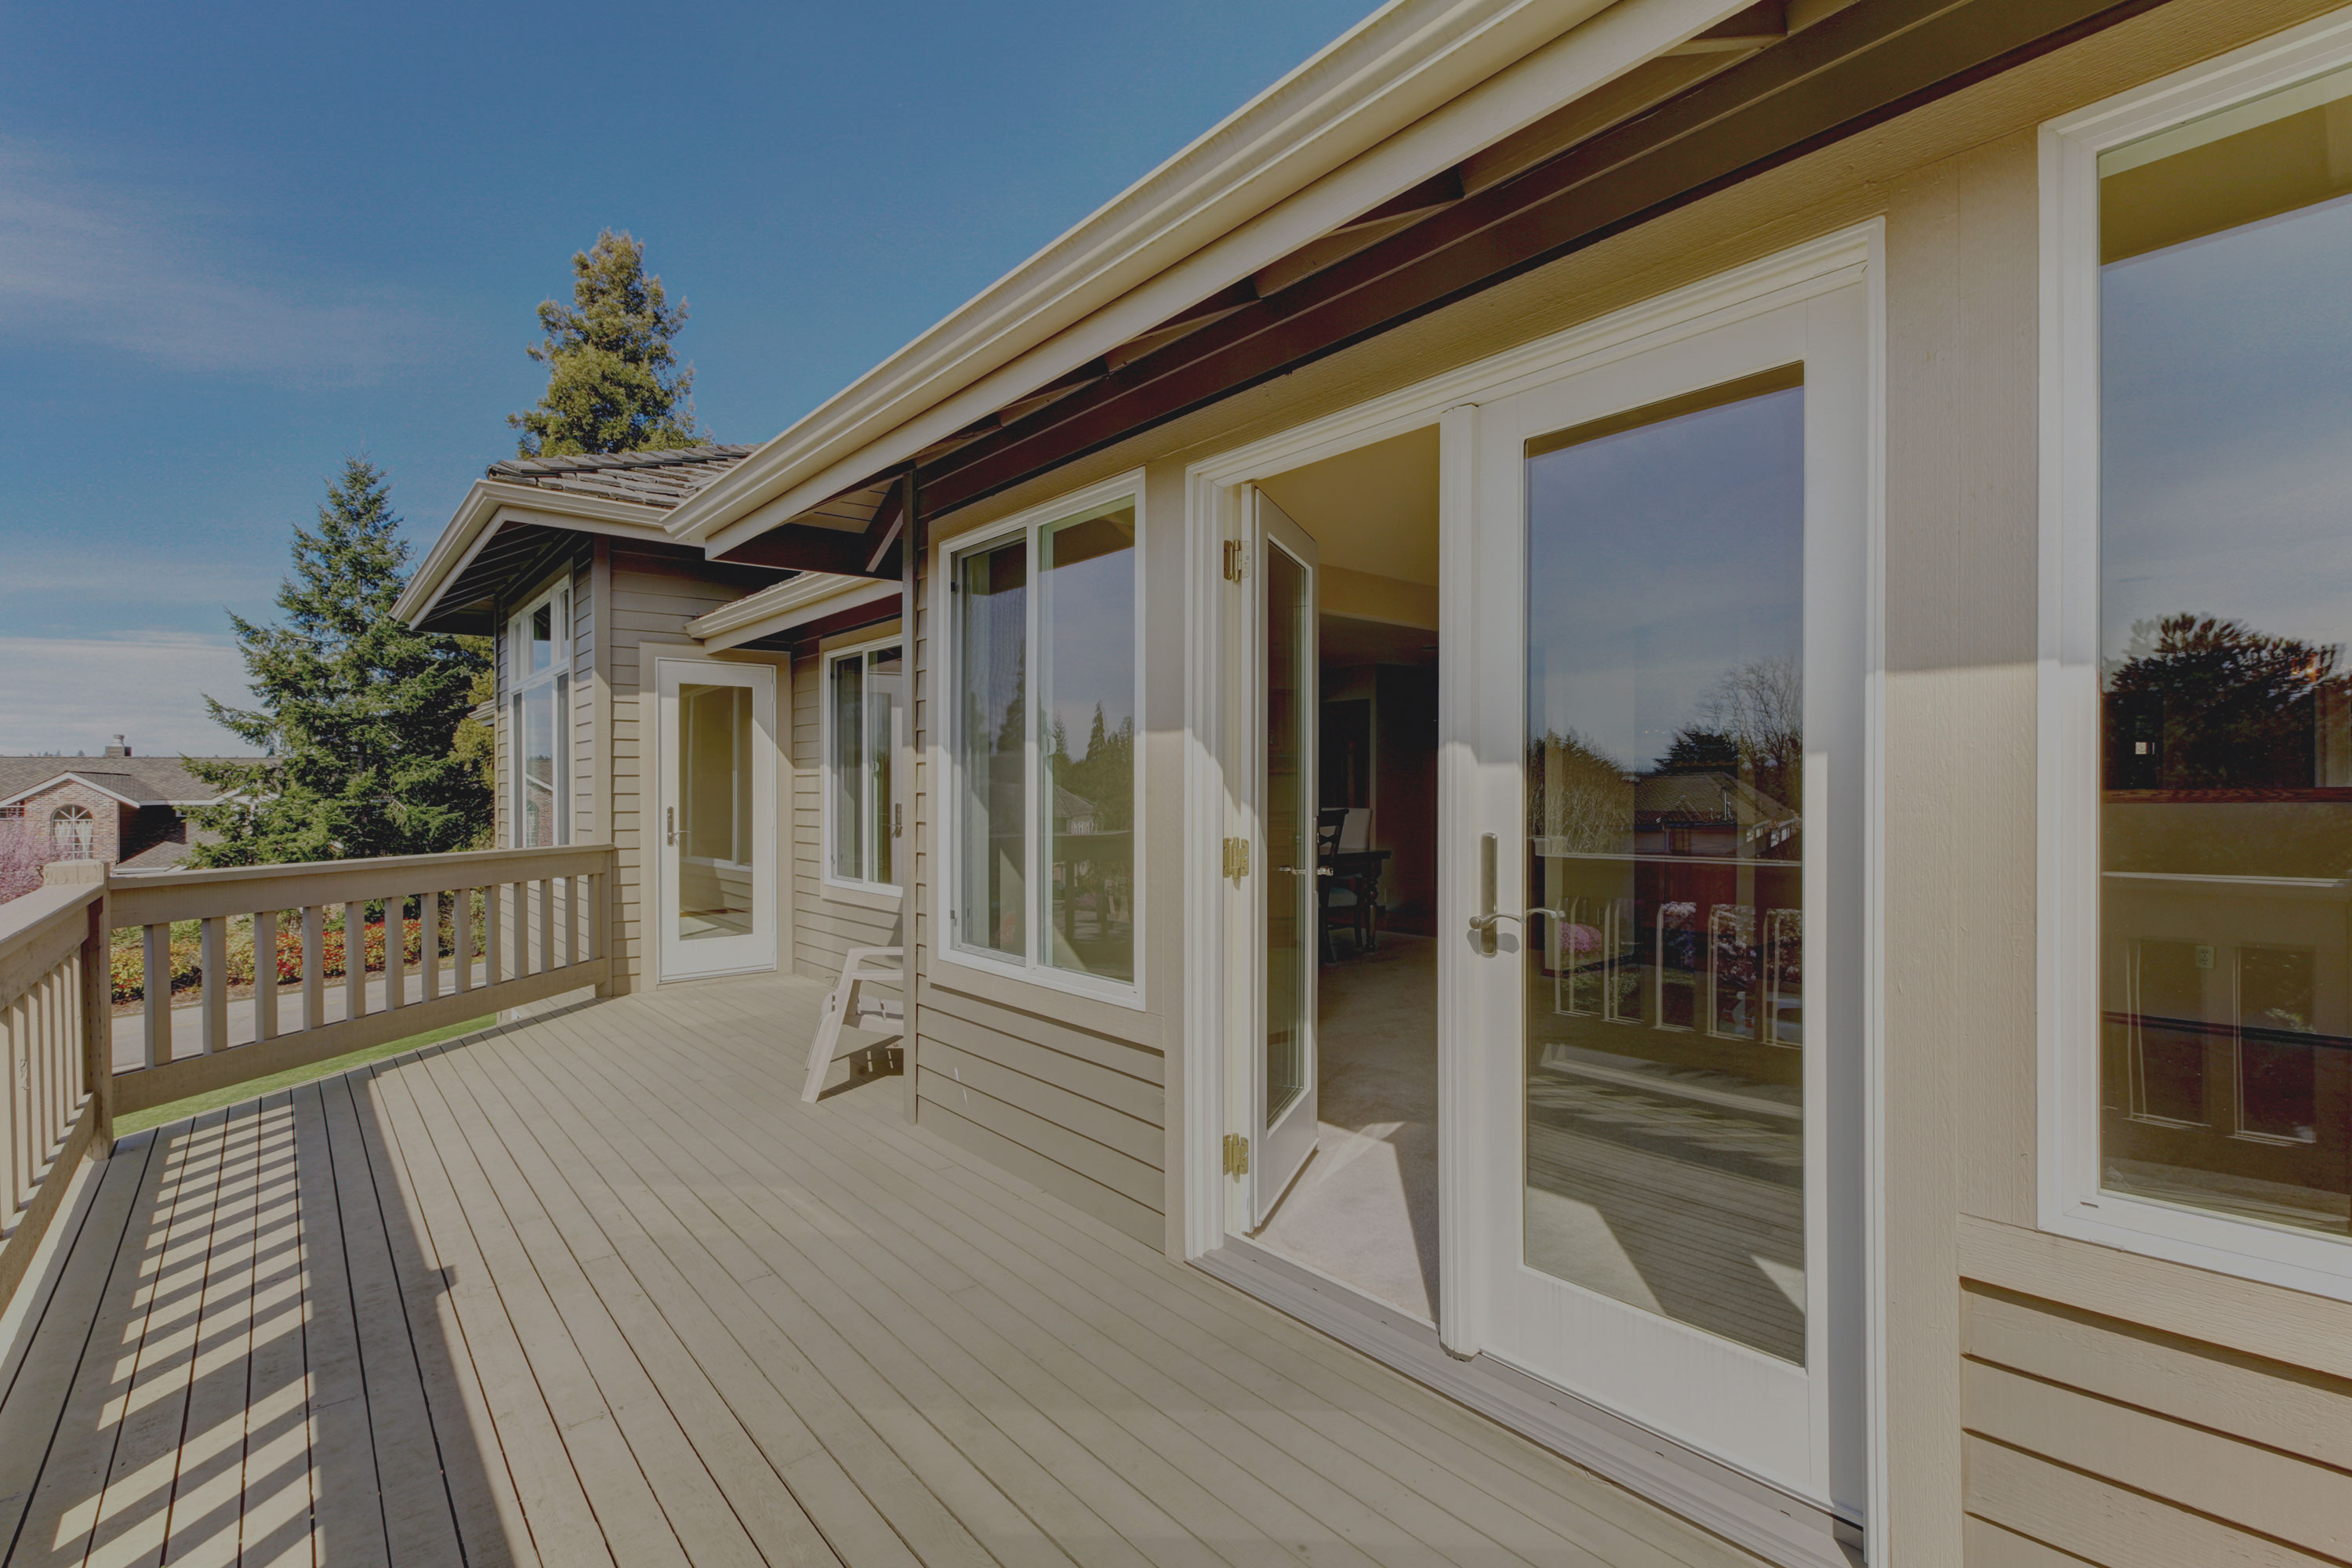 Beauty & Efficiency | Hometown Exterior Designs - Portland, OR - Vancouver, WA